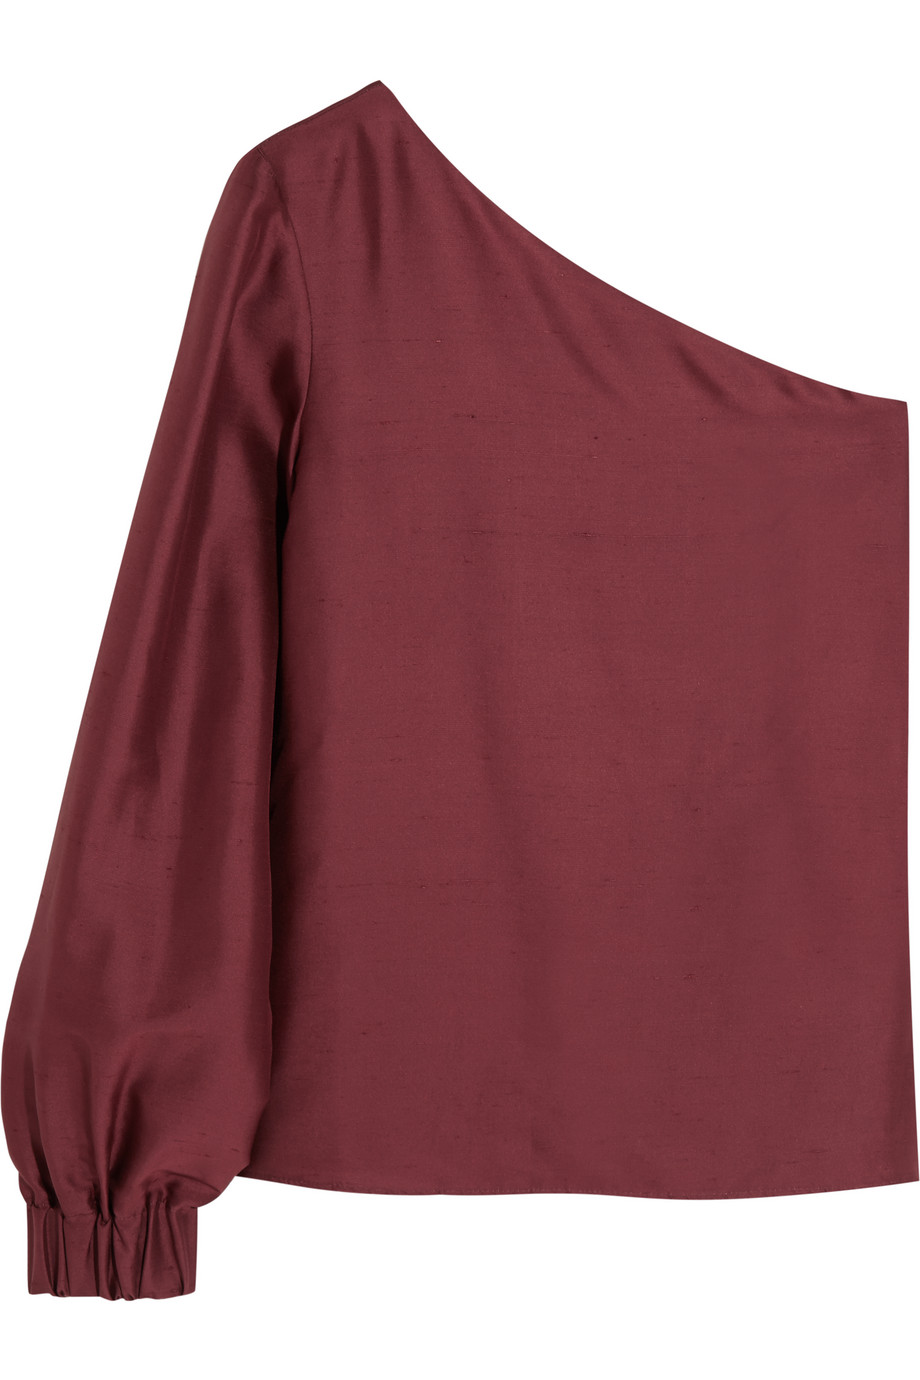 Zeus+dione Agnes One-Sleeve Silk-Shantung Top, Burgundy, Women's, Size: 42